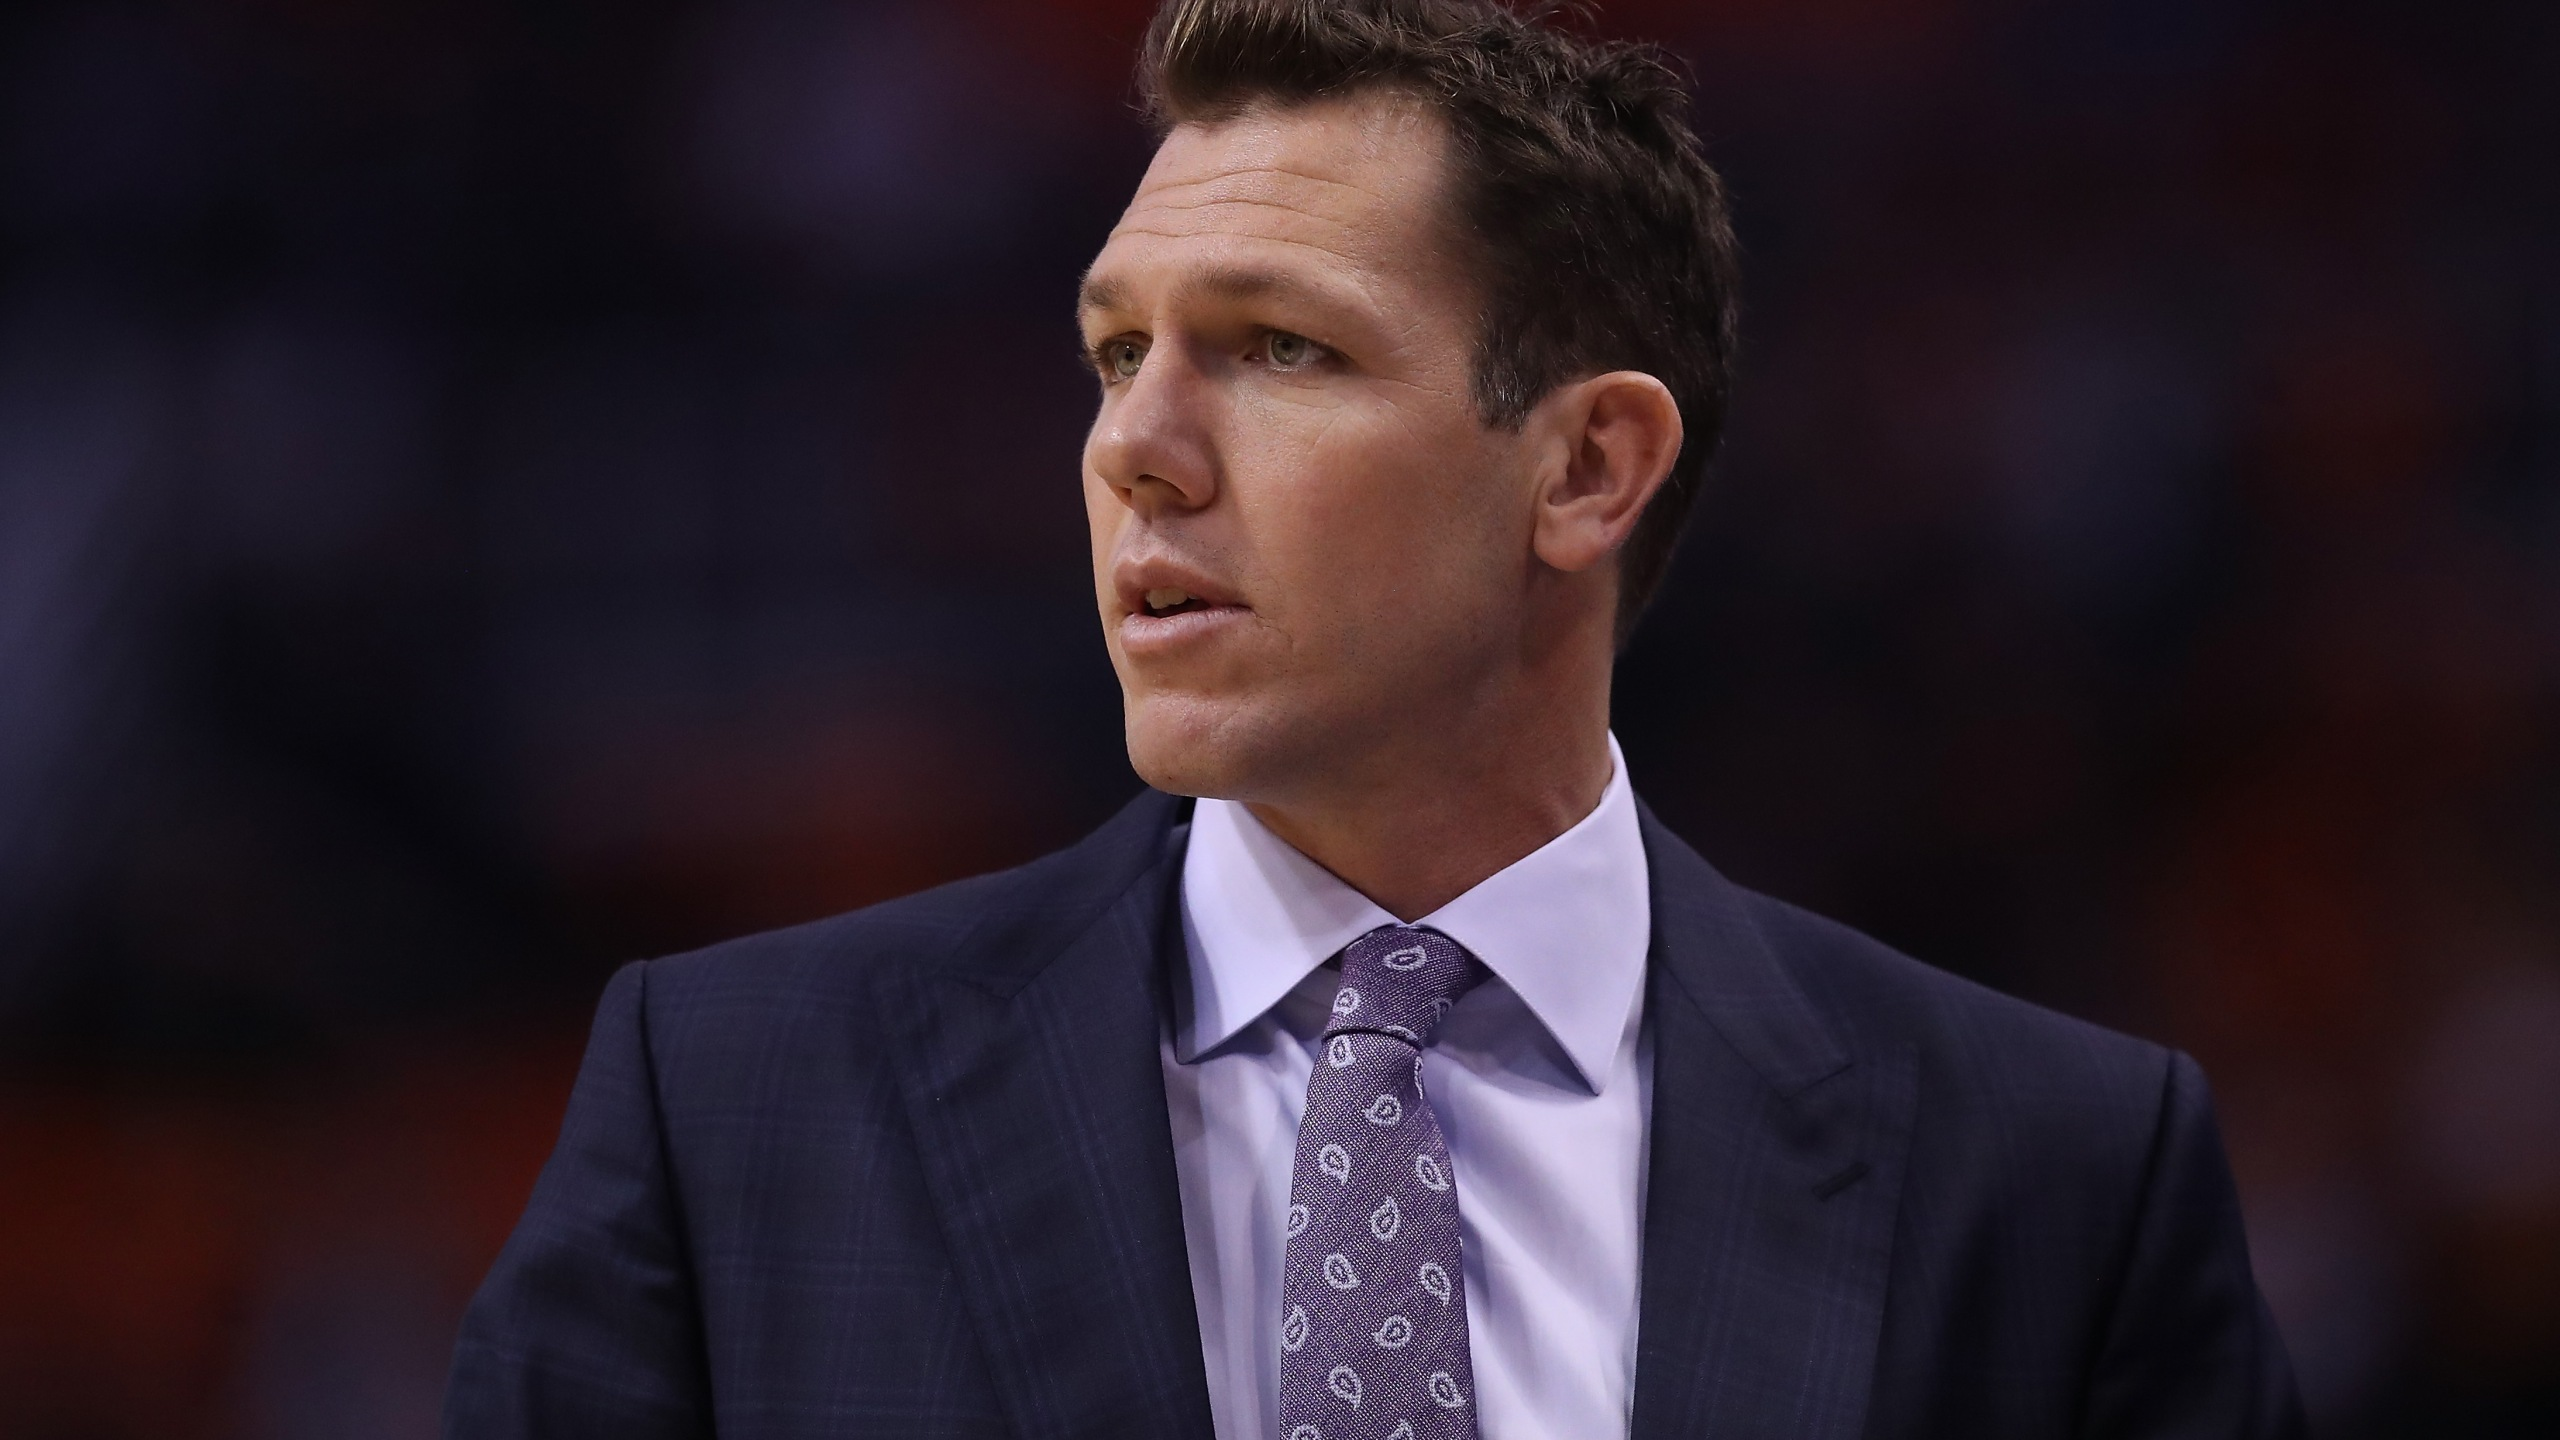 Head coach Luke Walton of the Sacramento Kings is seen during the first half of the NBA game against the Phoenix Suns in Arizona on Oct. 23, 2019. (Credit: Christian Petersen / Getty Images)